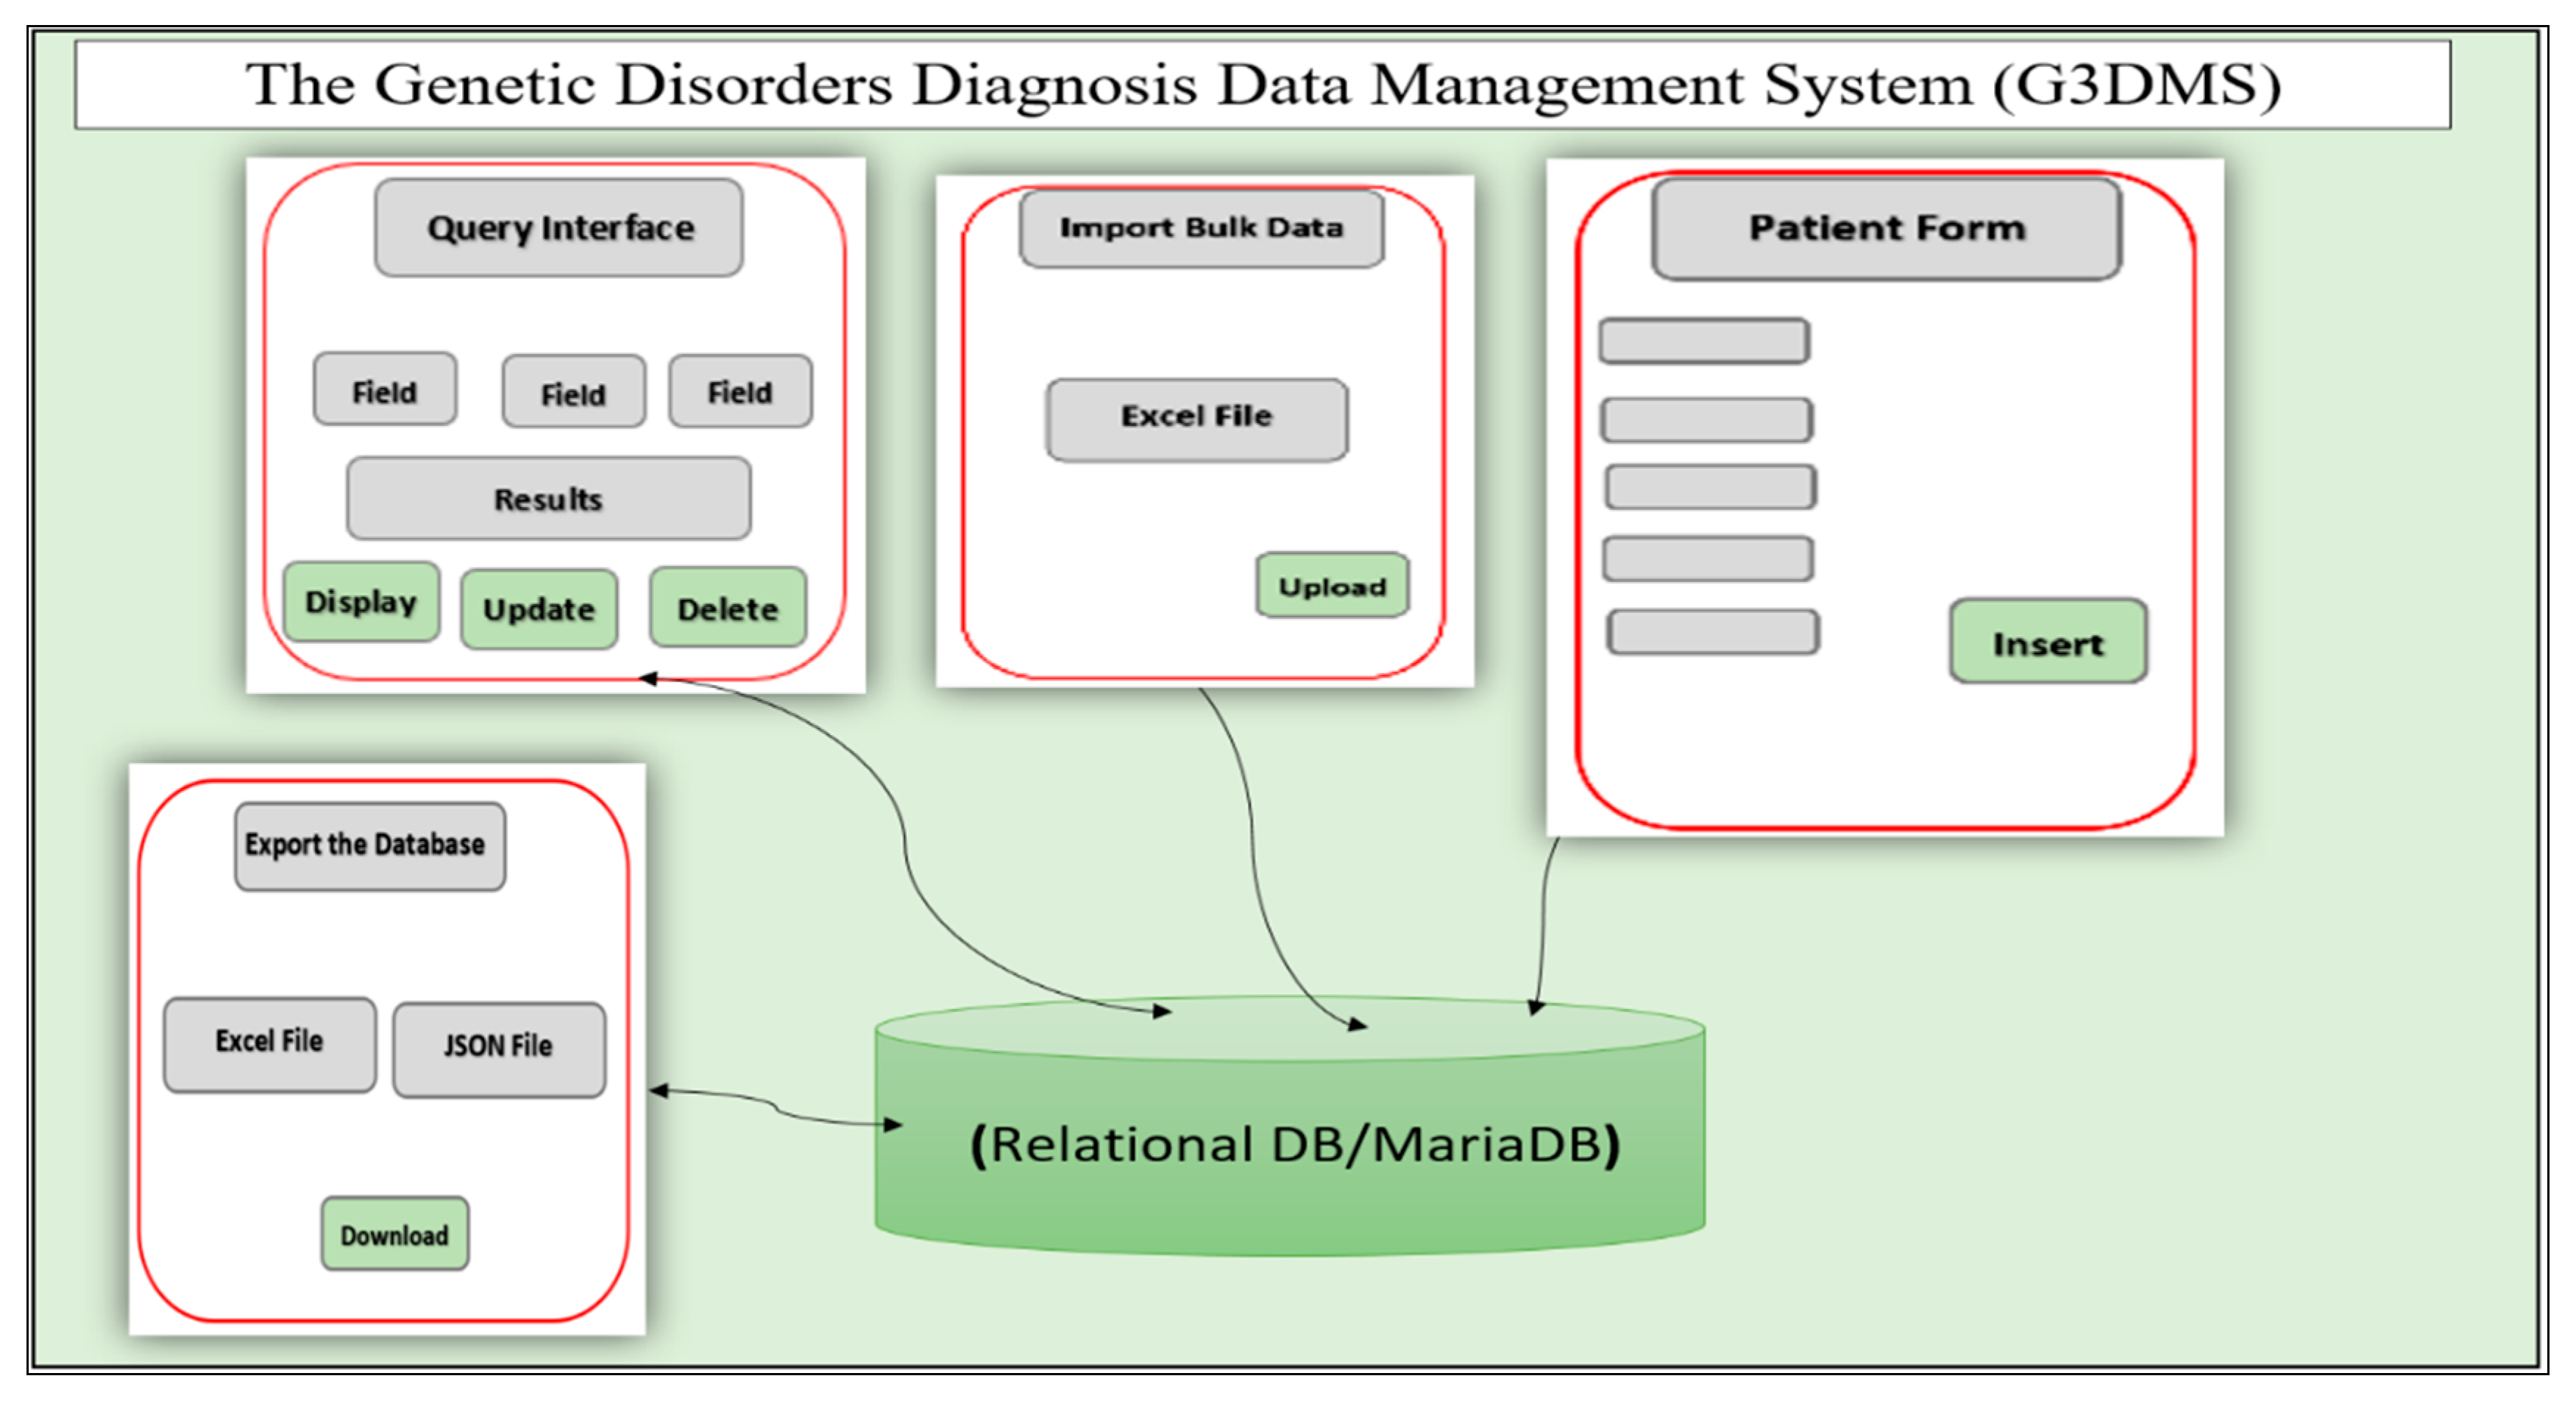 Healthcare Free Full Text G3dms Design And Implementation Of A Data Management System For The Diagnosis Of Genetic Disorders Html